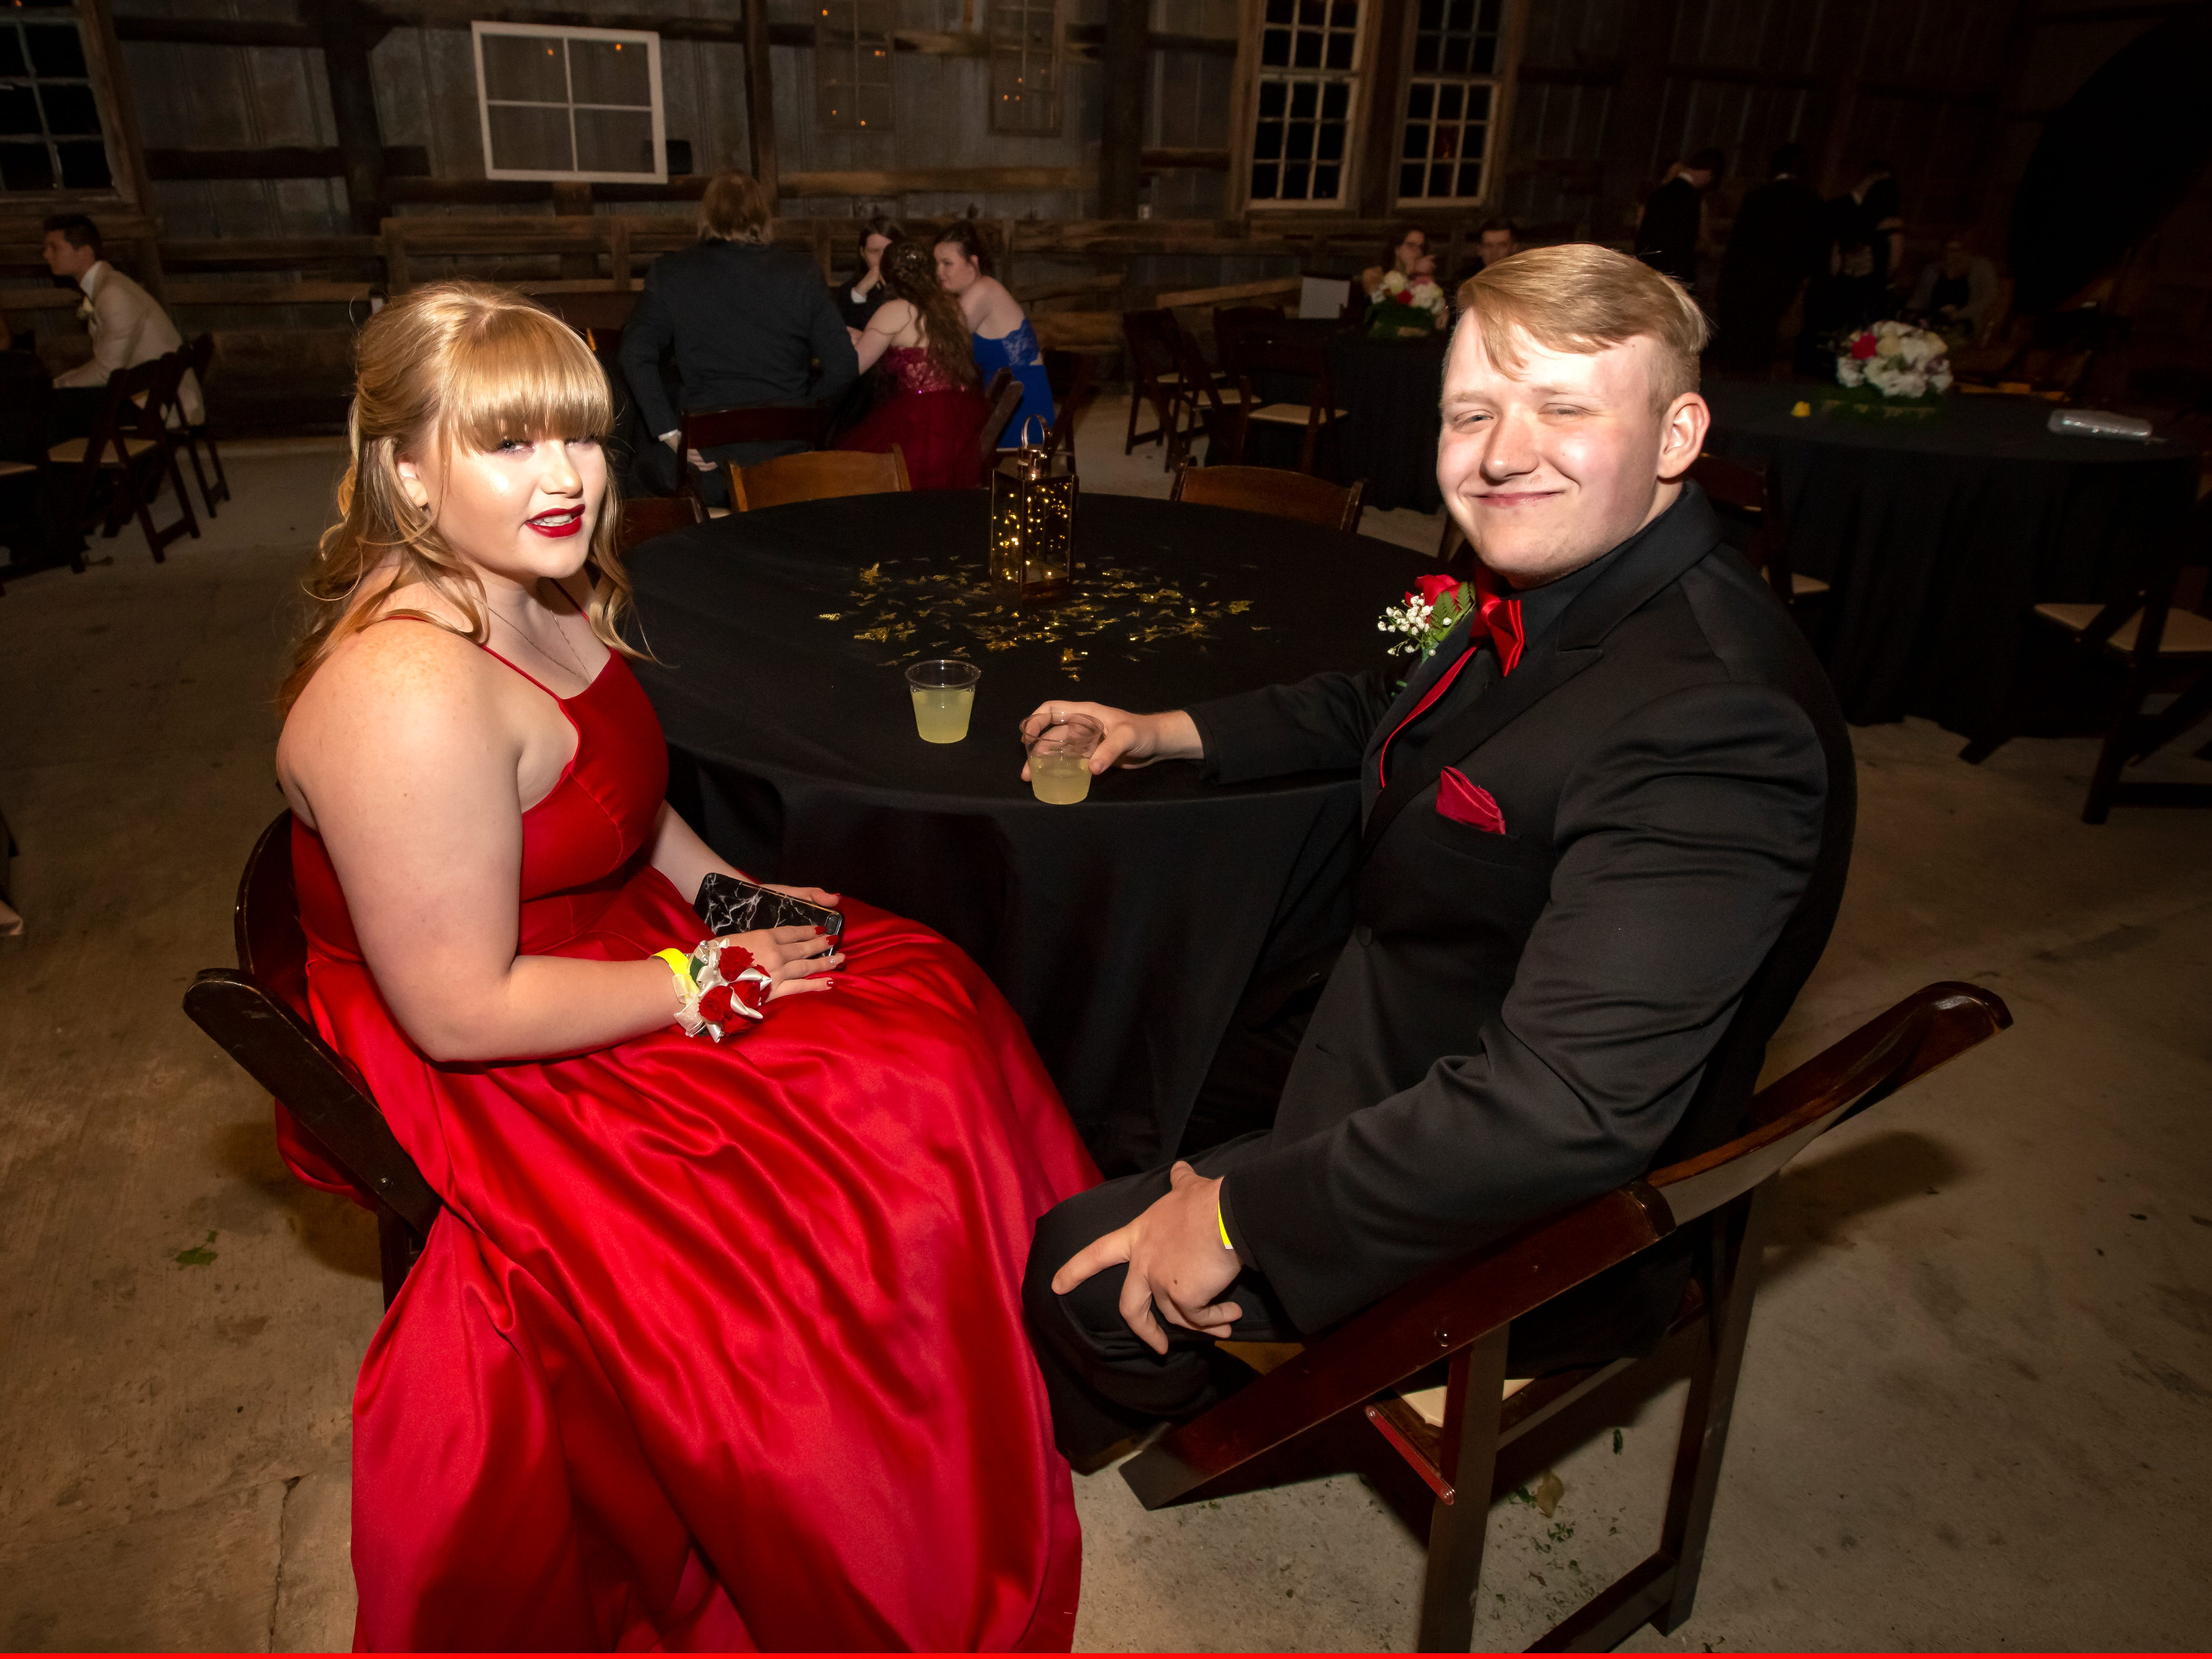 Kassidy Cawthron and Todd Simpson at the Smyrna High School prom held at the Grove, Friday, April 26, 2019.